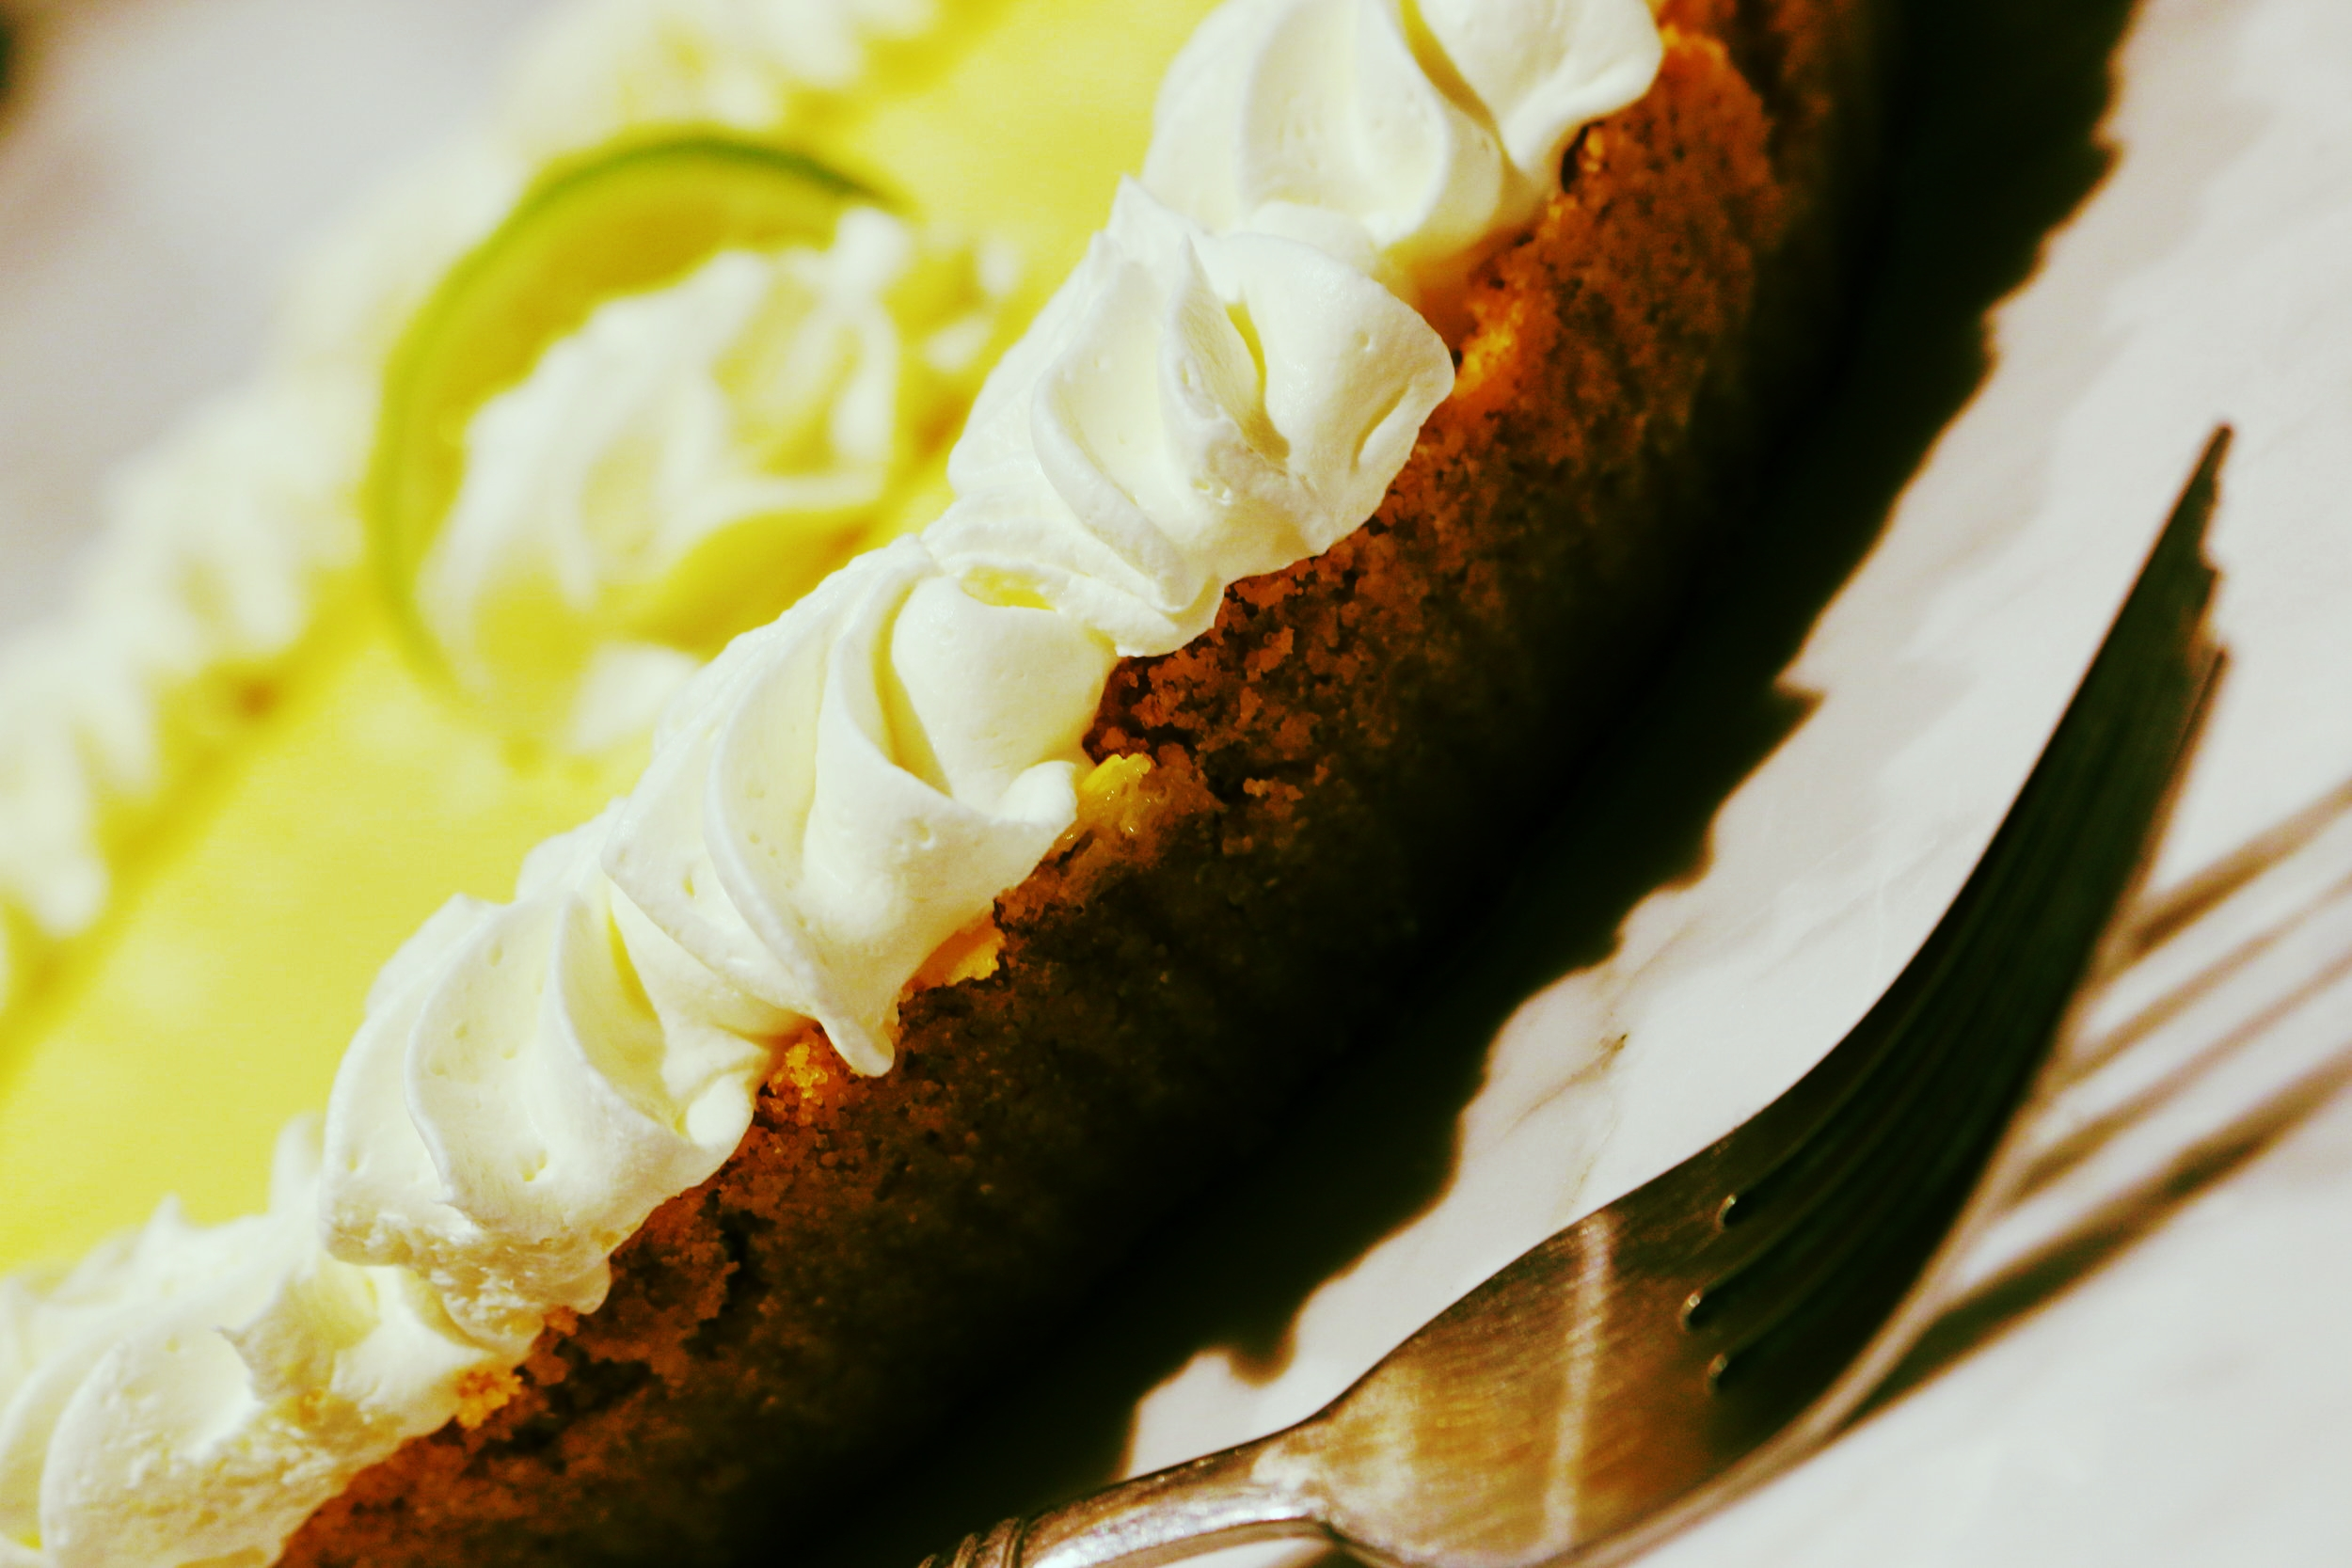 Homemade Key Lime Pie from Cafe Coco.